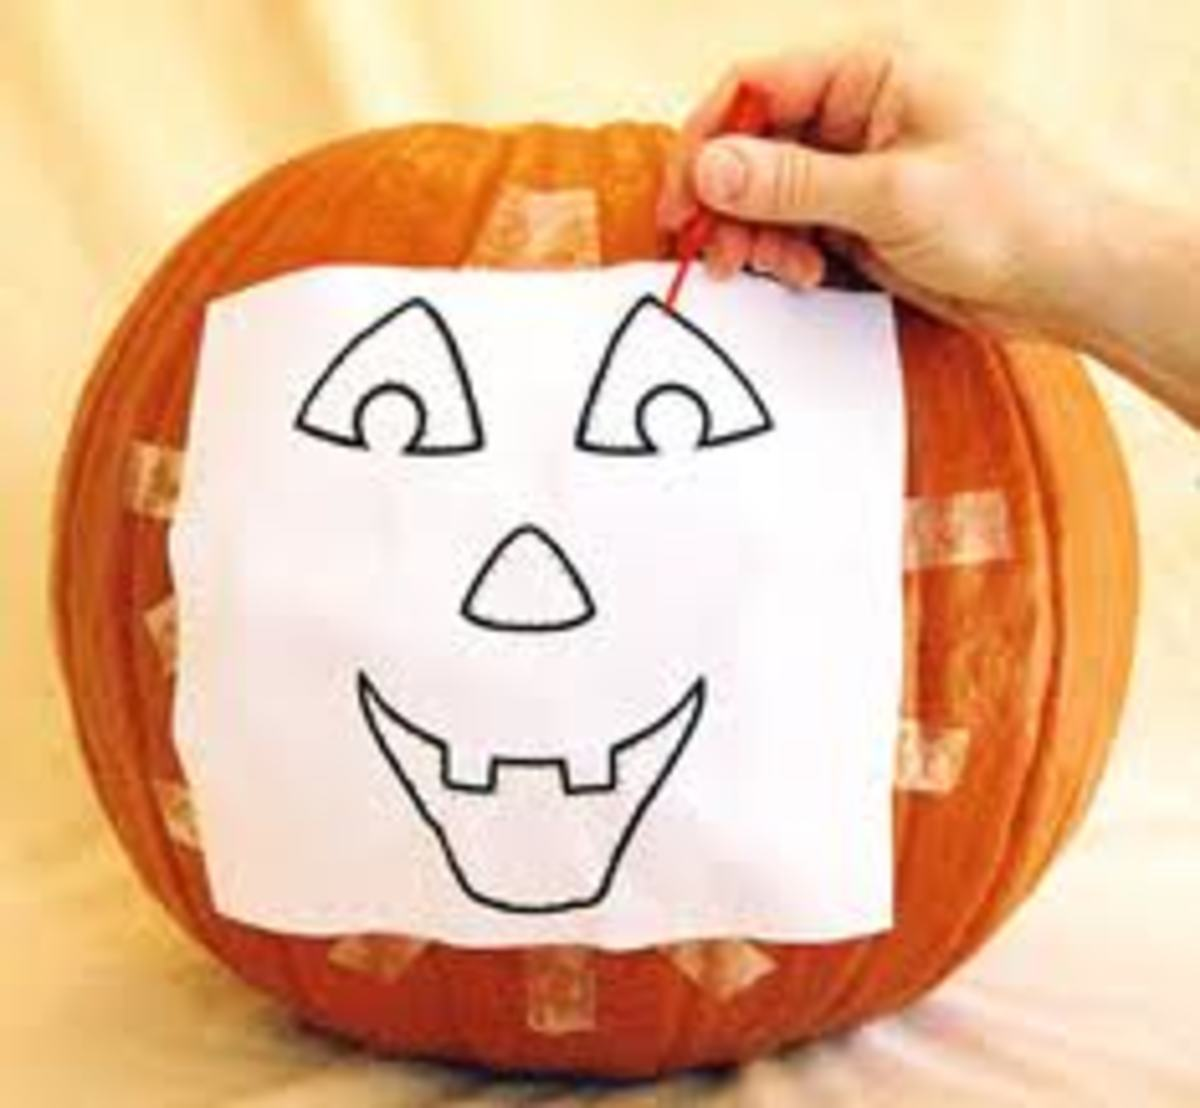 hellish-jack-o-lantern-ideas-and-craving-patterns